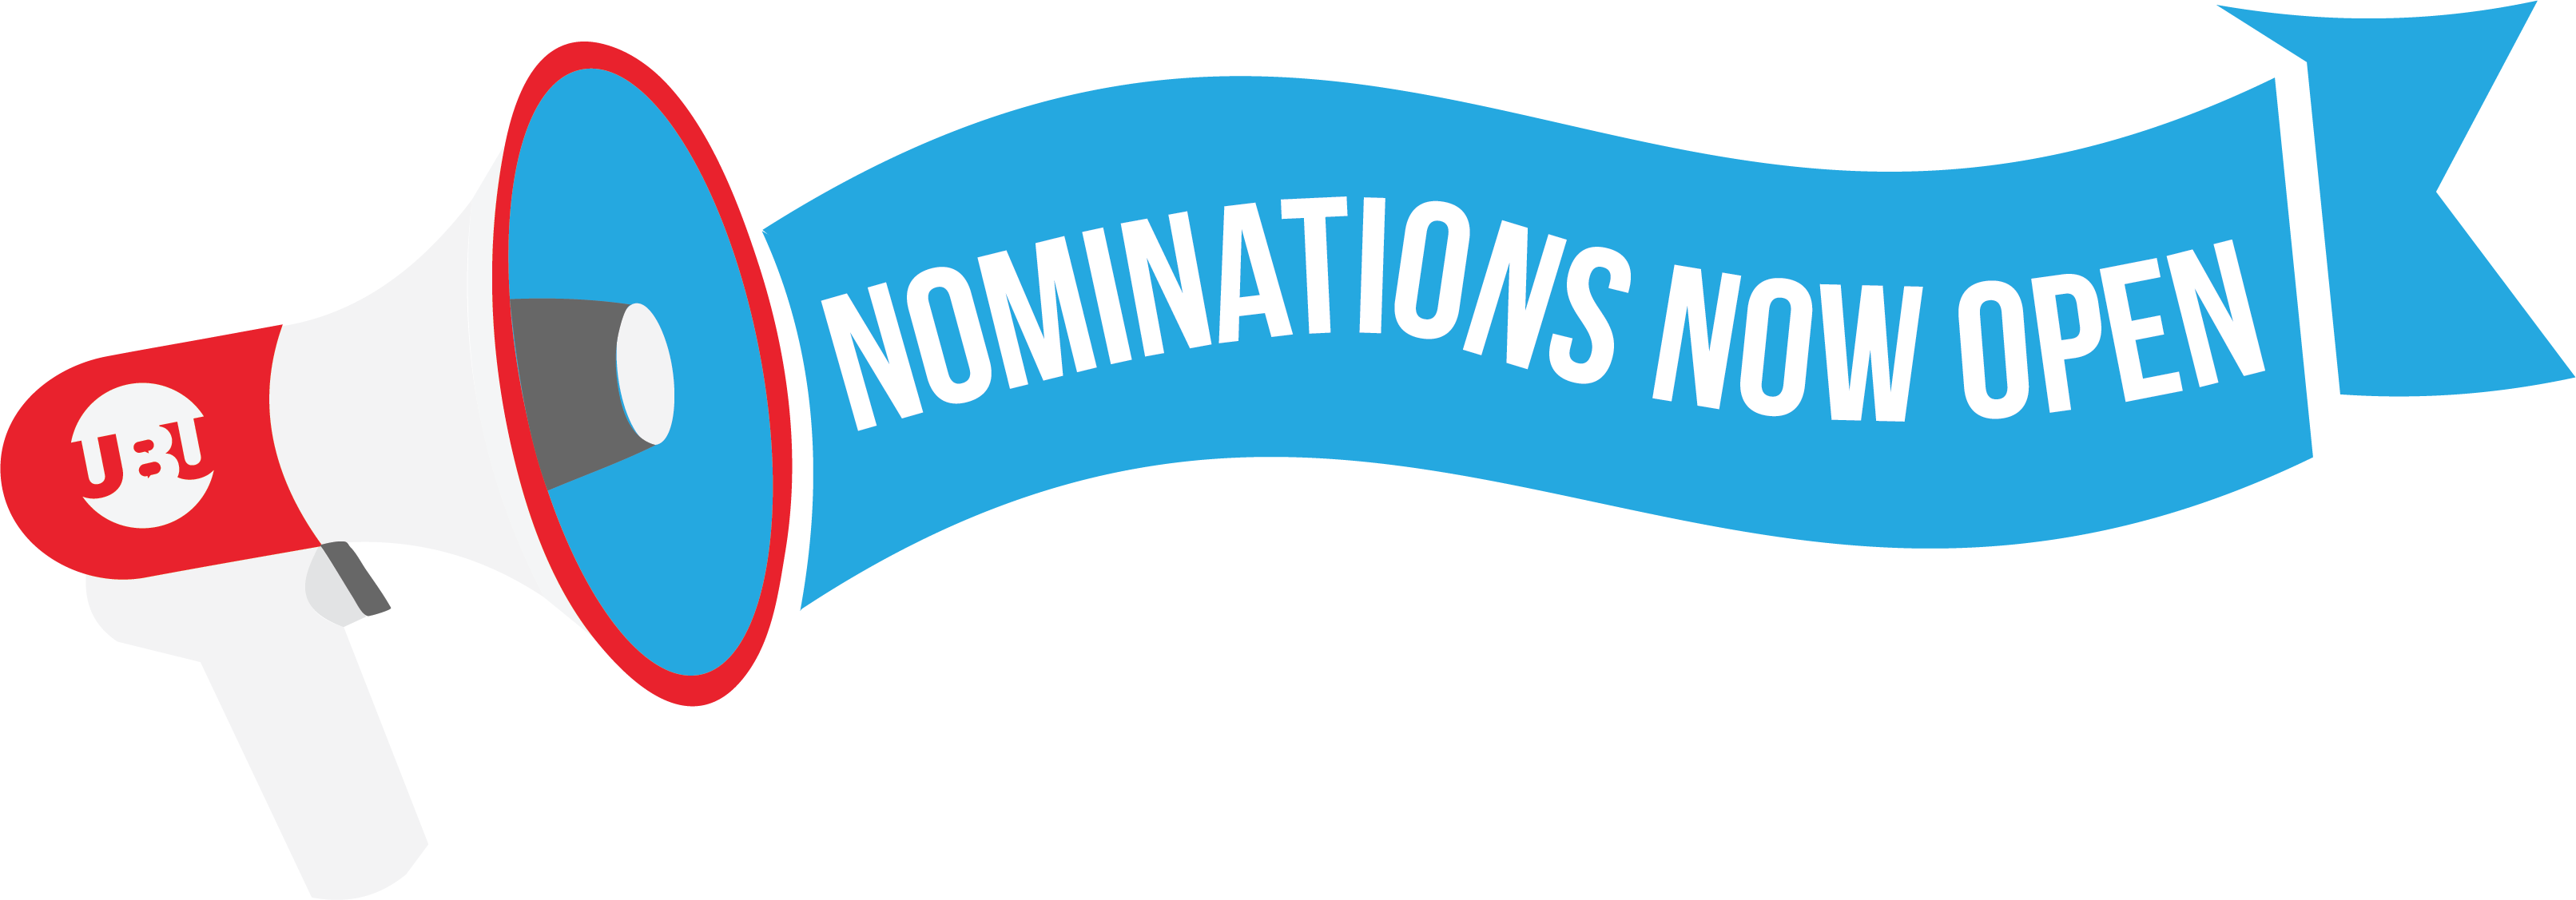 Nominations now open banner